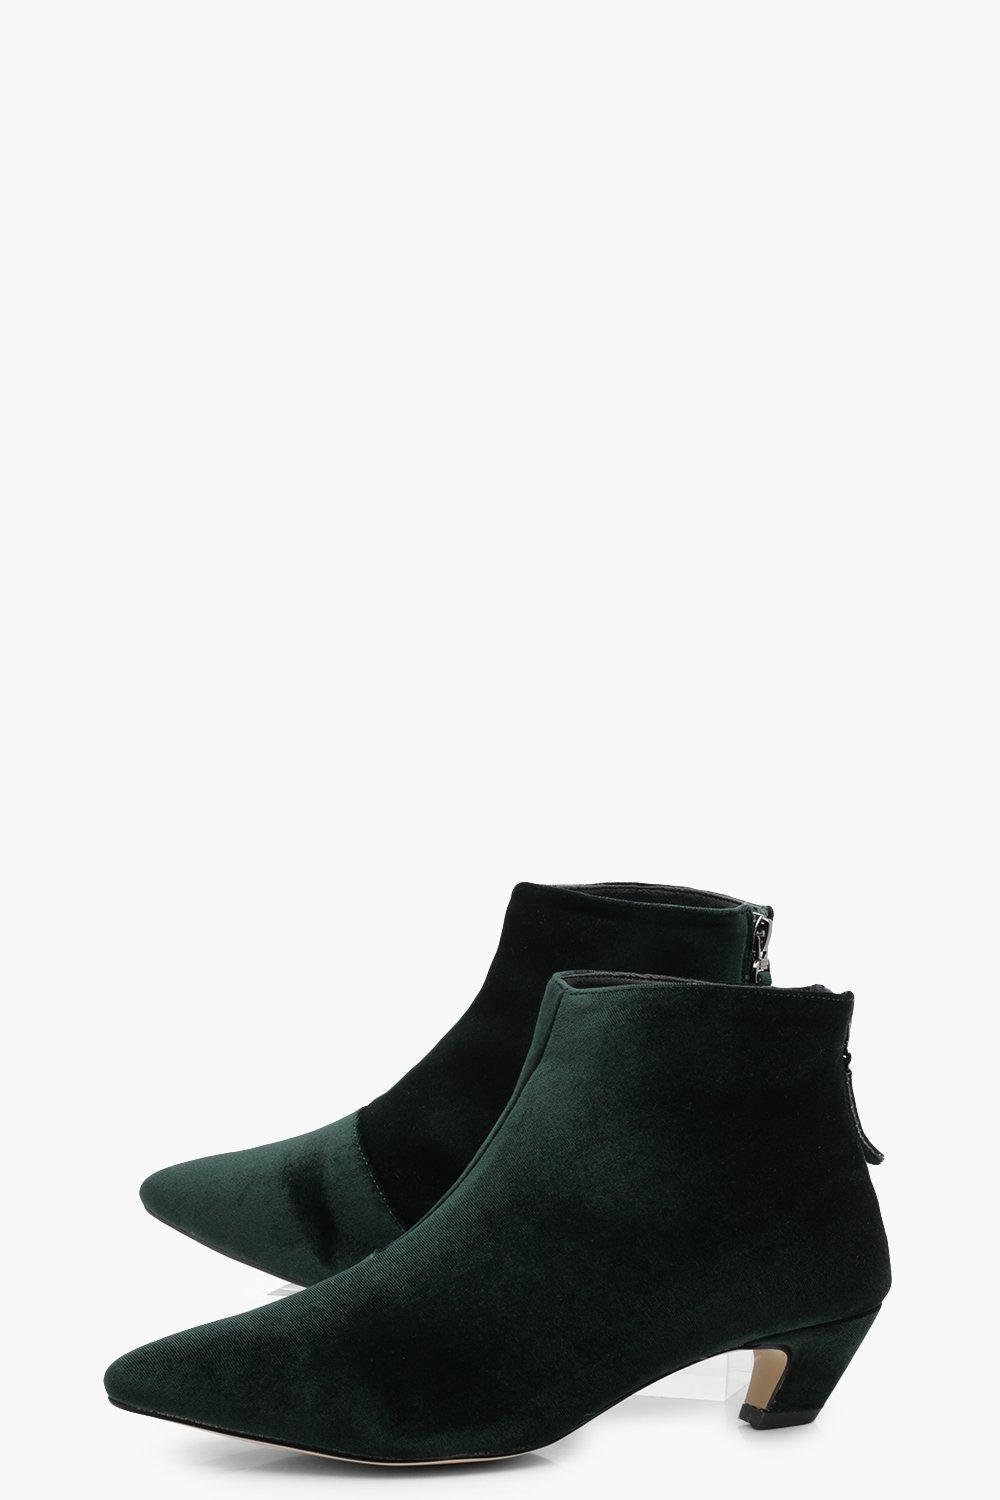 Boohoo Josie Pointed Toe Low Ankle Boot in Green